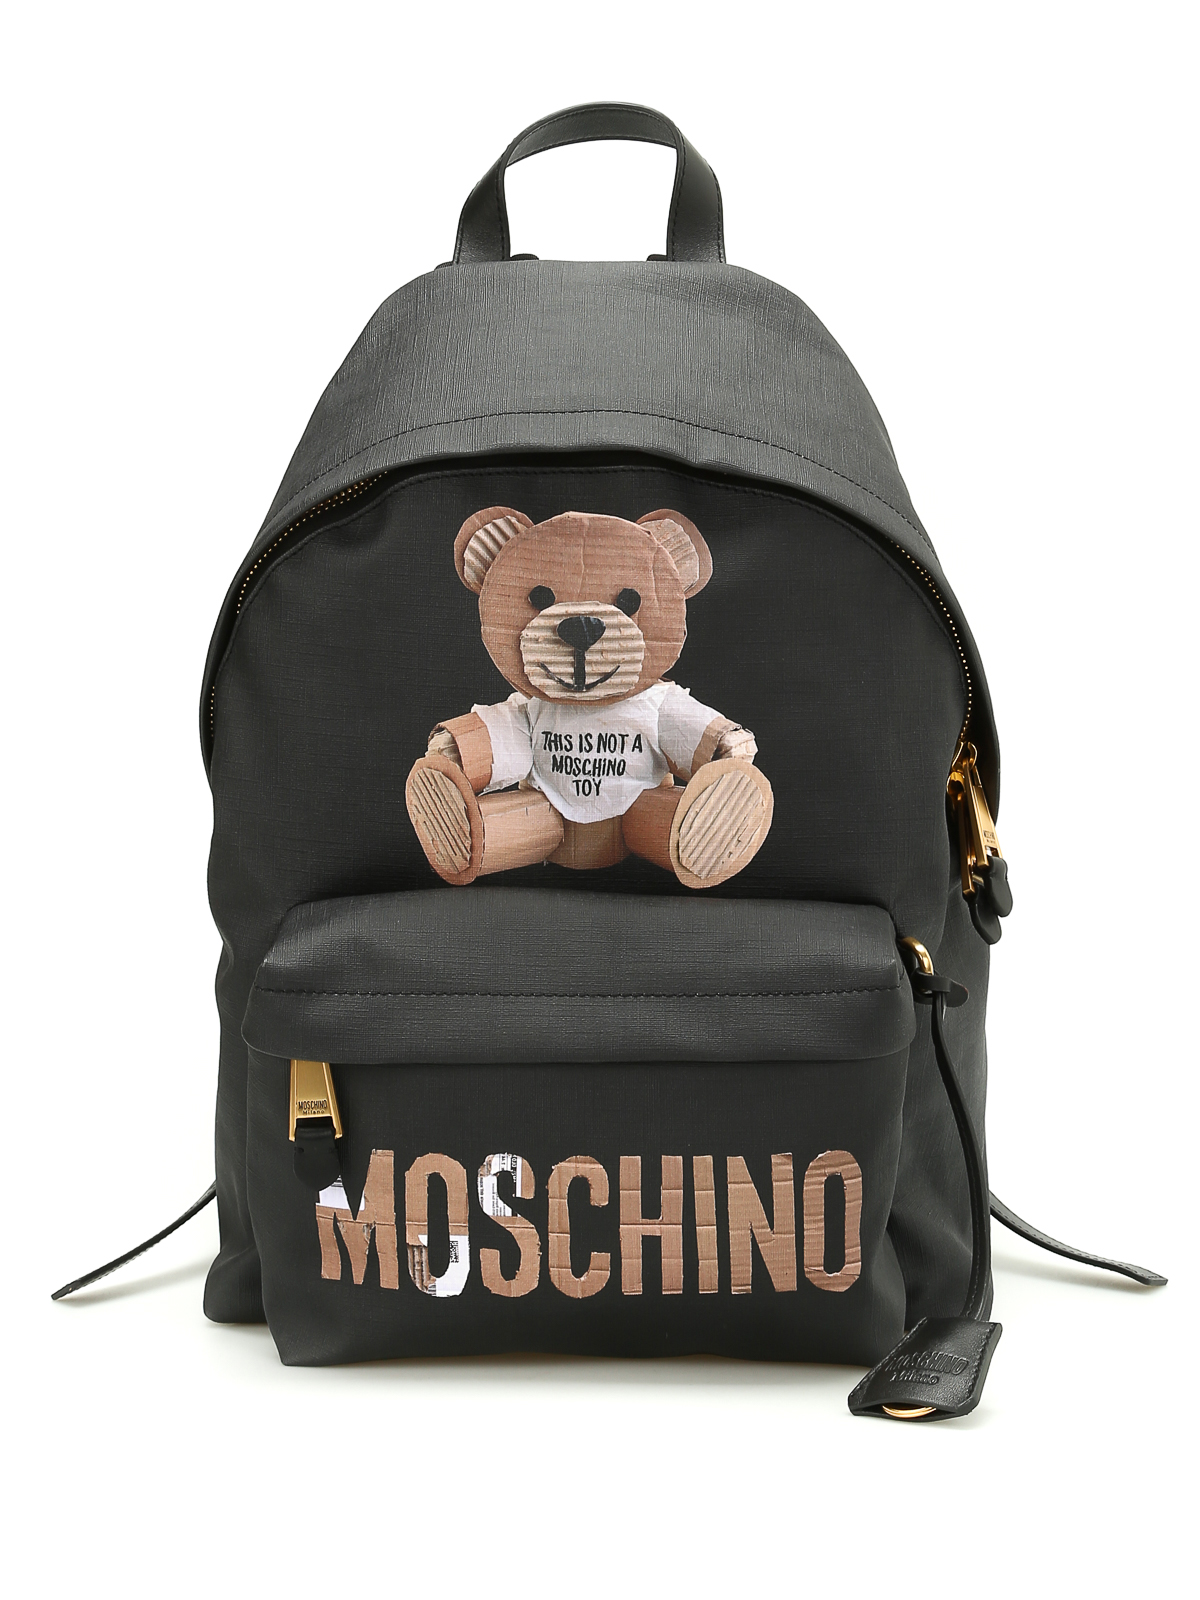 Moschino Saffiano Leather Backpack Backpacks